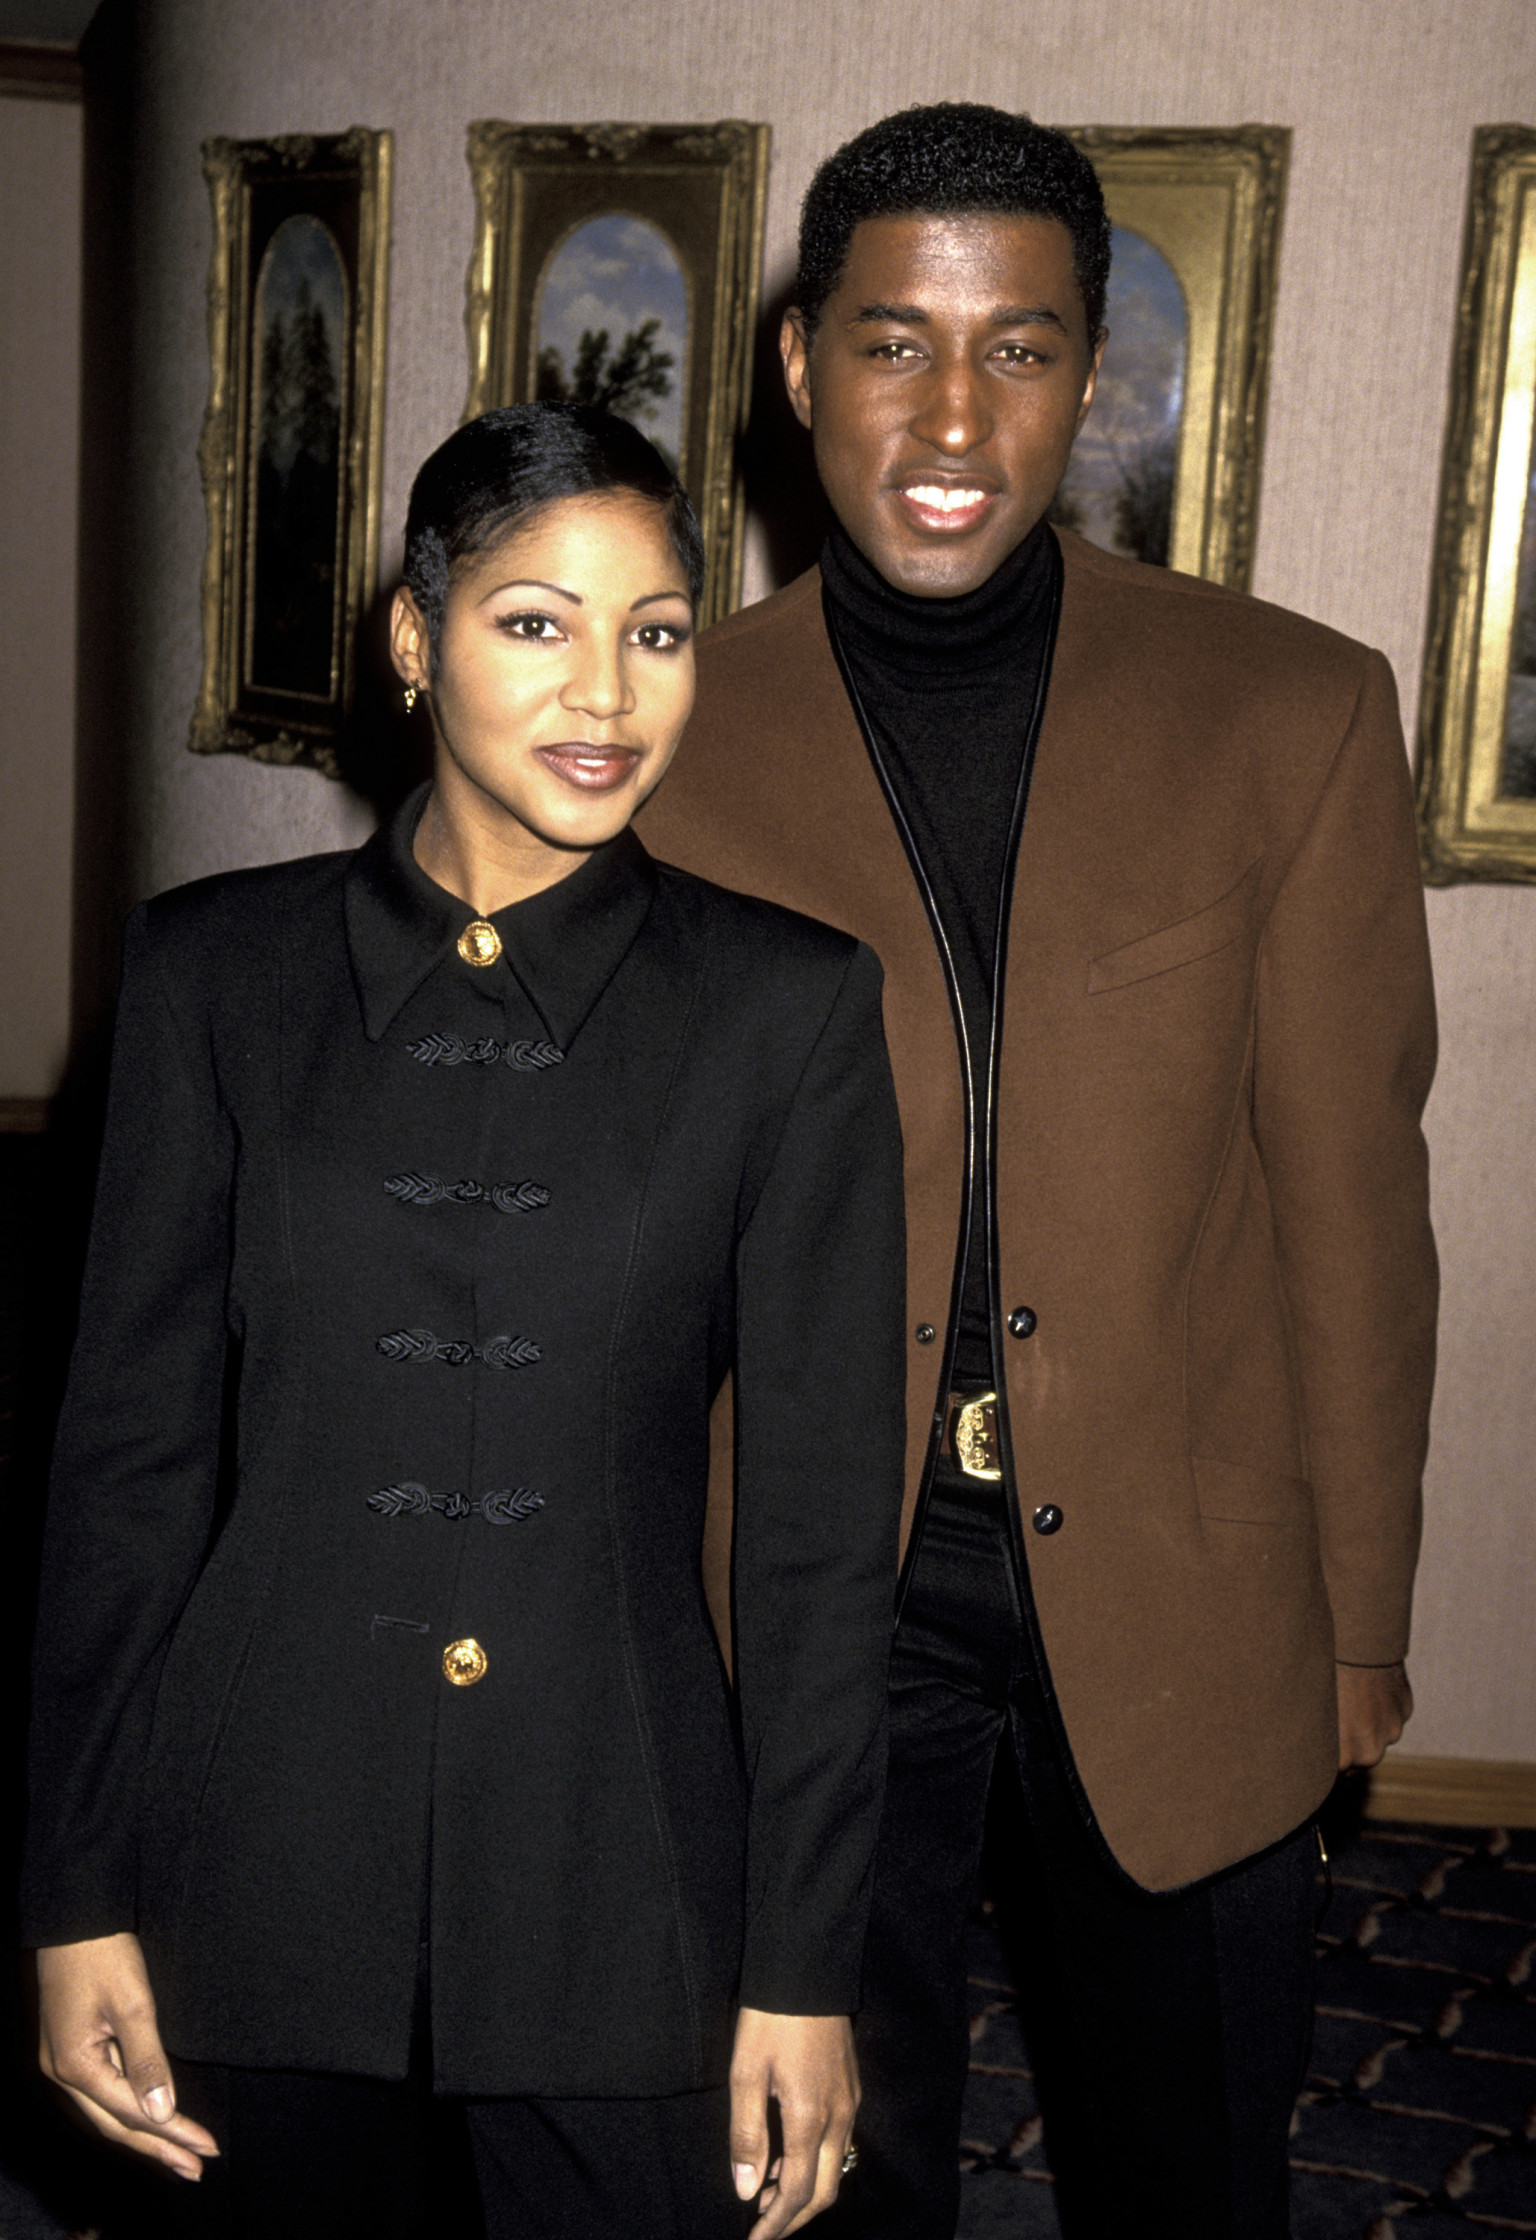 broxton dating site Toni braxton's heart is aflutter—and it's all because of birdman the singer, 48, and the rapper, 47, made their public debut as a couple at the 2016 bet awards.